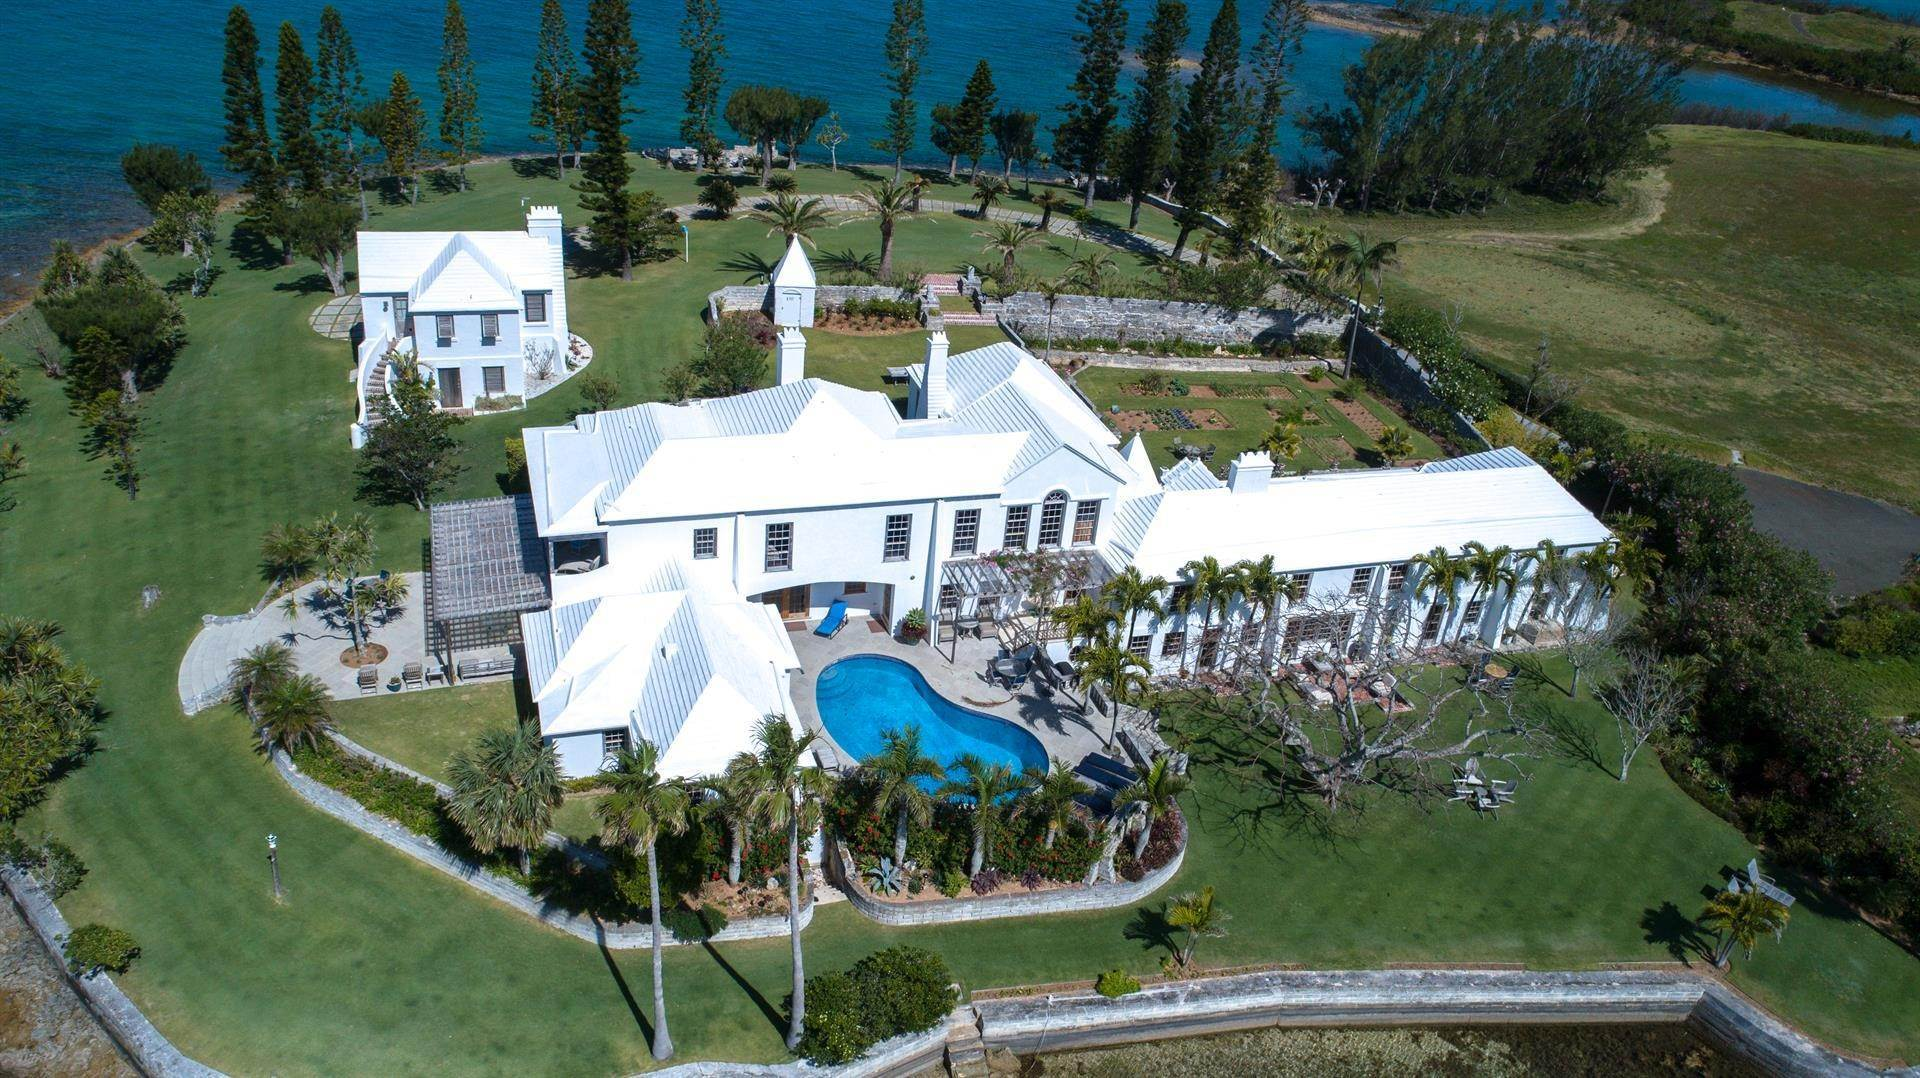 4. Địa ốc vì Bán tại Windsong House Windsong House, 15 Fairways Road,Bermuda – Sinclair Realty